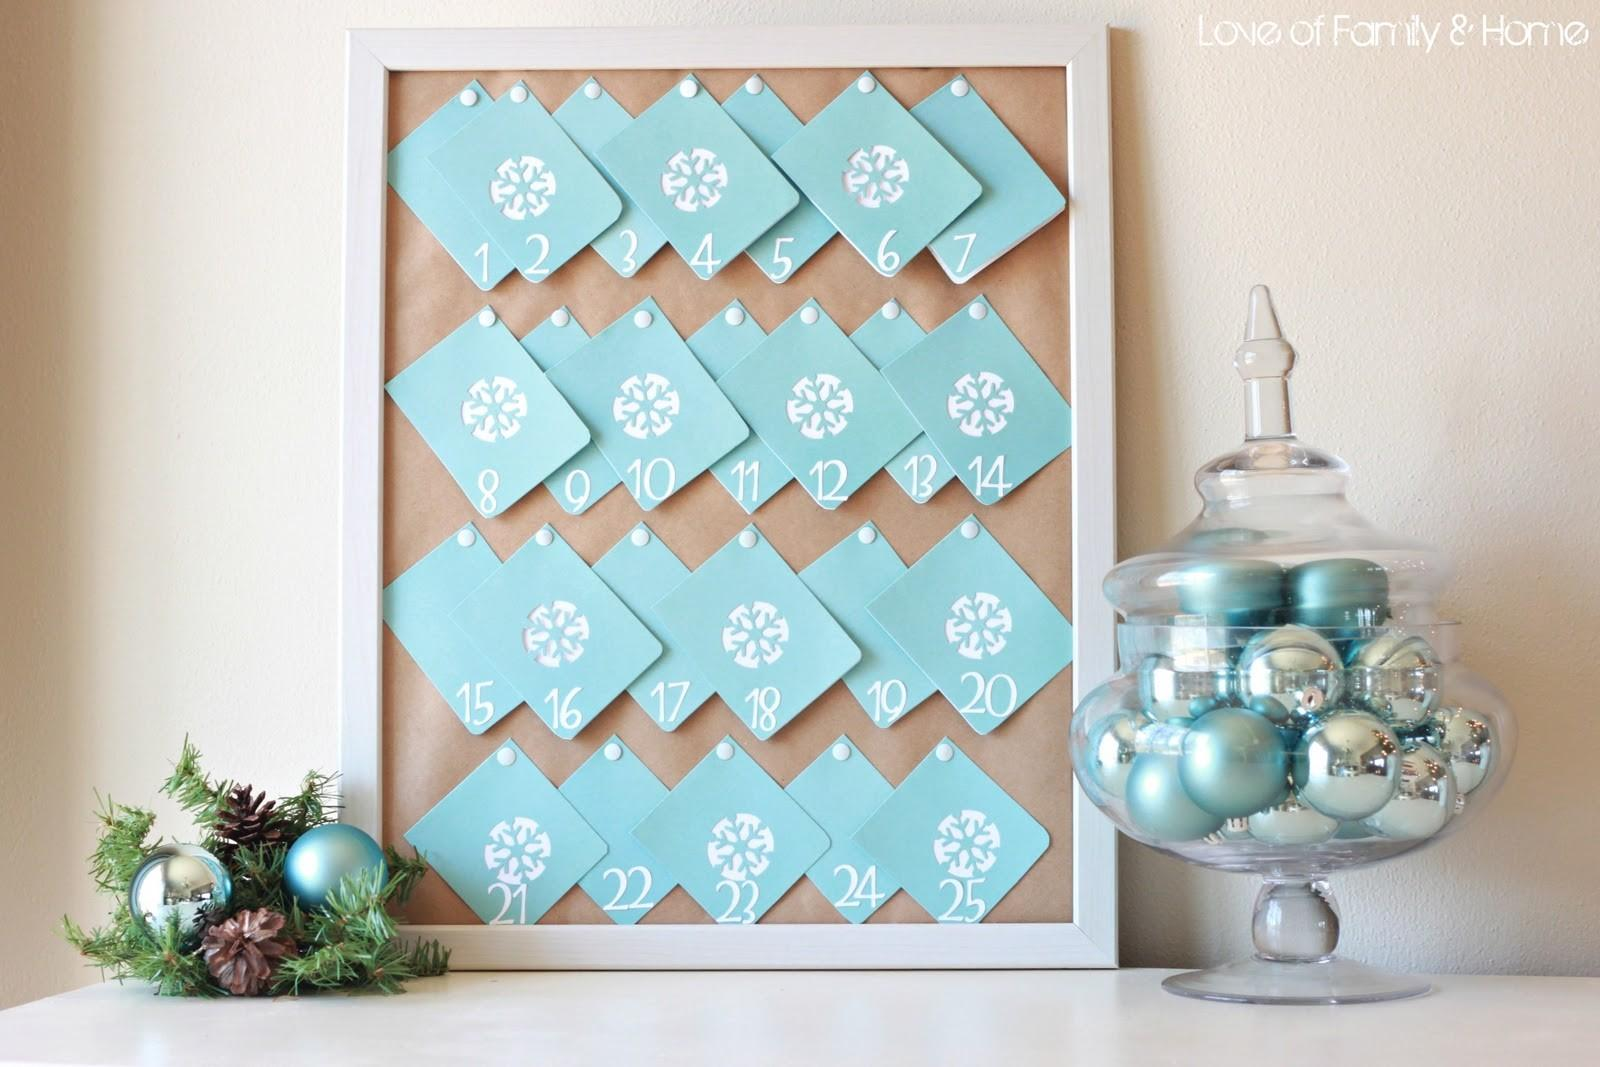 Diy Advent Calendar Love Family Home